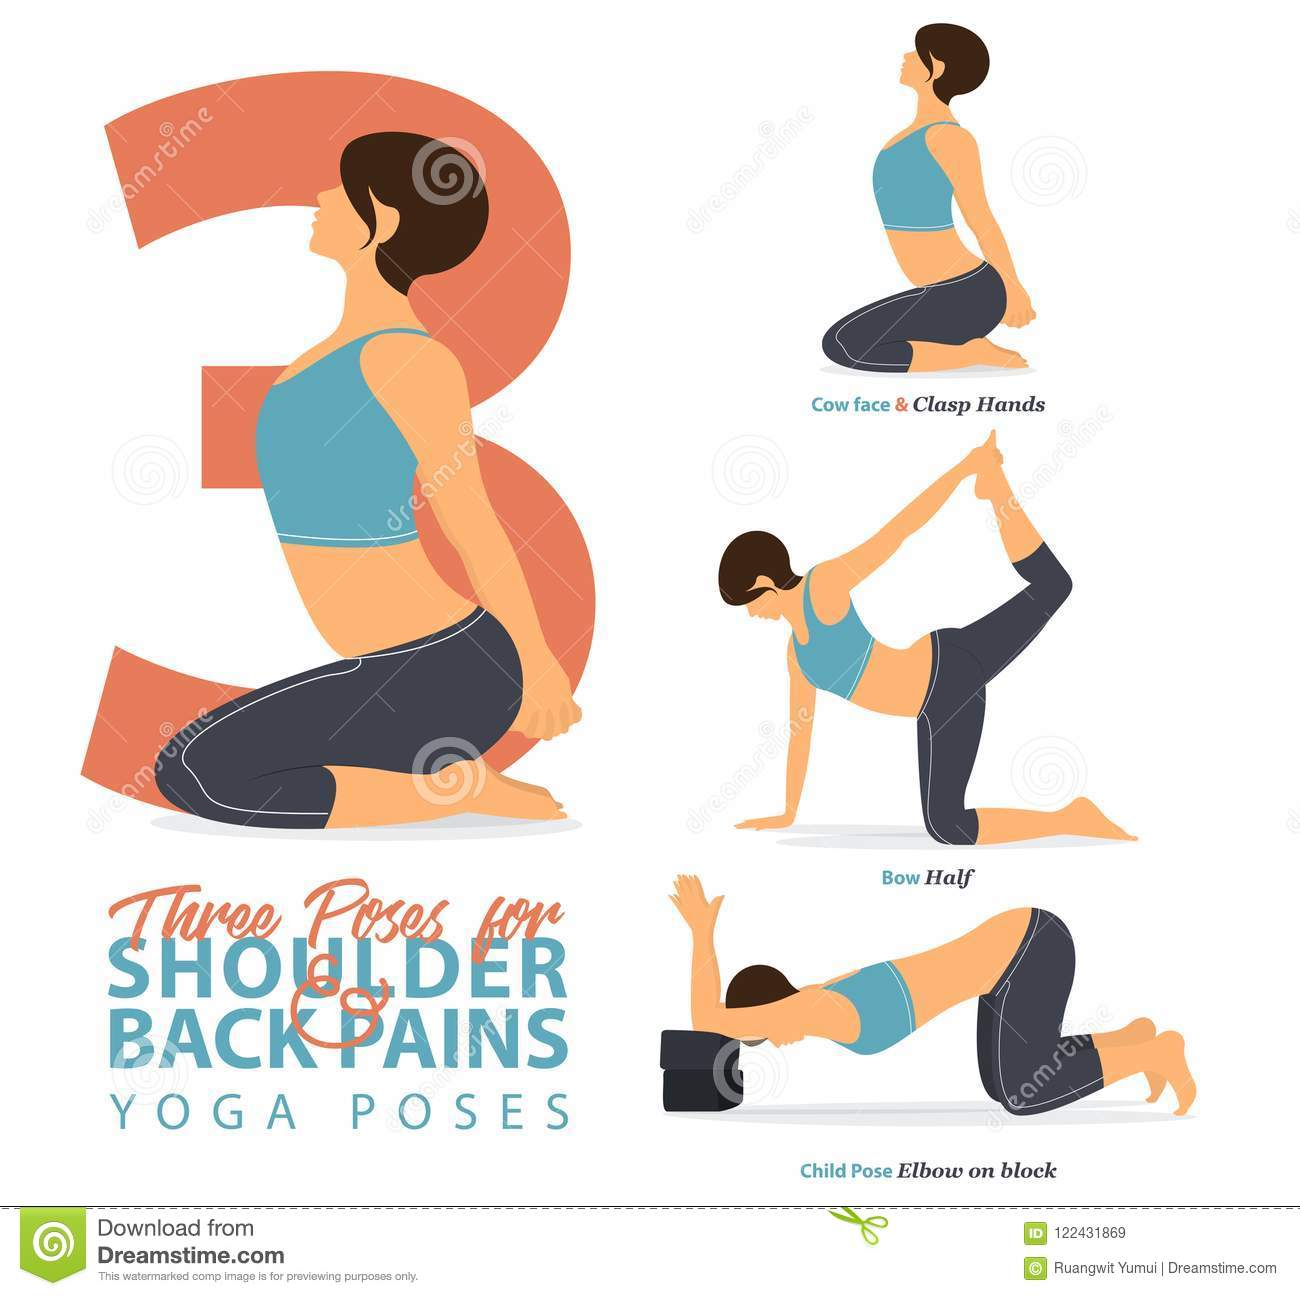 A Set Of Yoga Postures Female Figures For Infographic 3 Yoga Poses For Relief Lower Shoulder And Back Pain In Flat Design Stock Vector Illustration Of Illustration Beauty 122431869